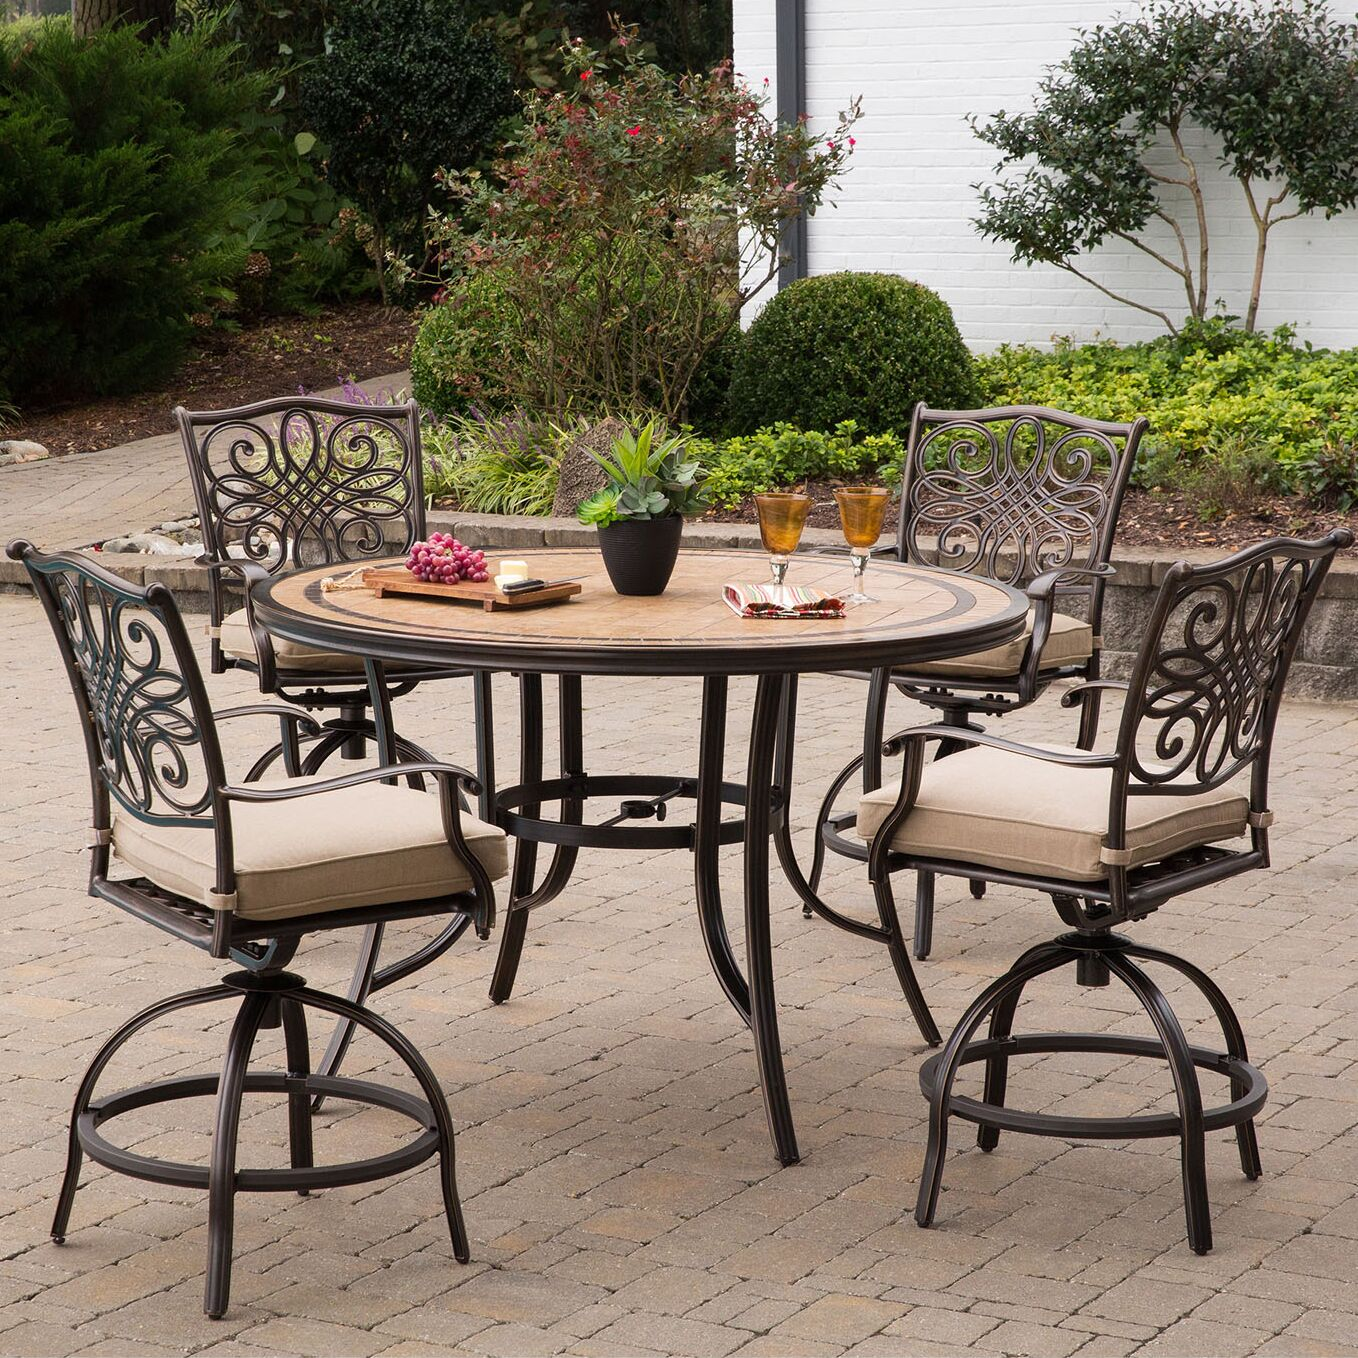 Bucci 5 Pieces High-Dining Set with Cushions Cushion Color: Tan